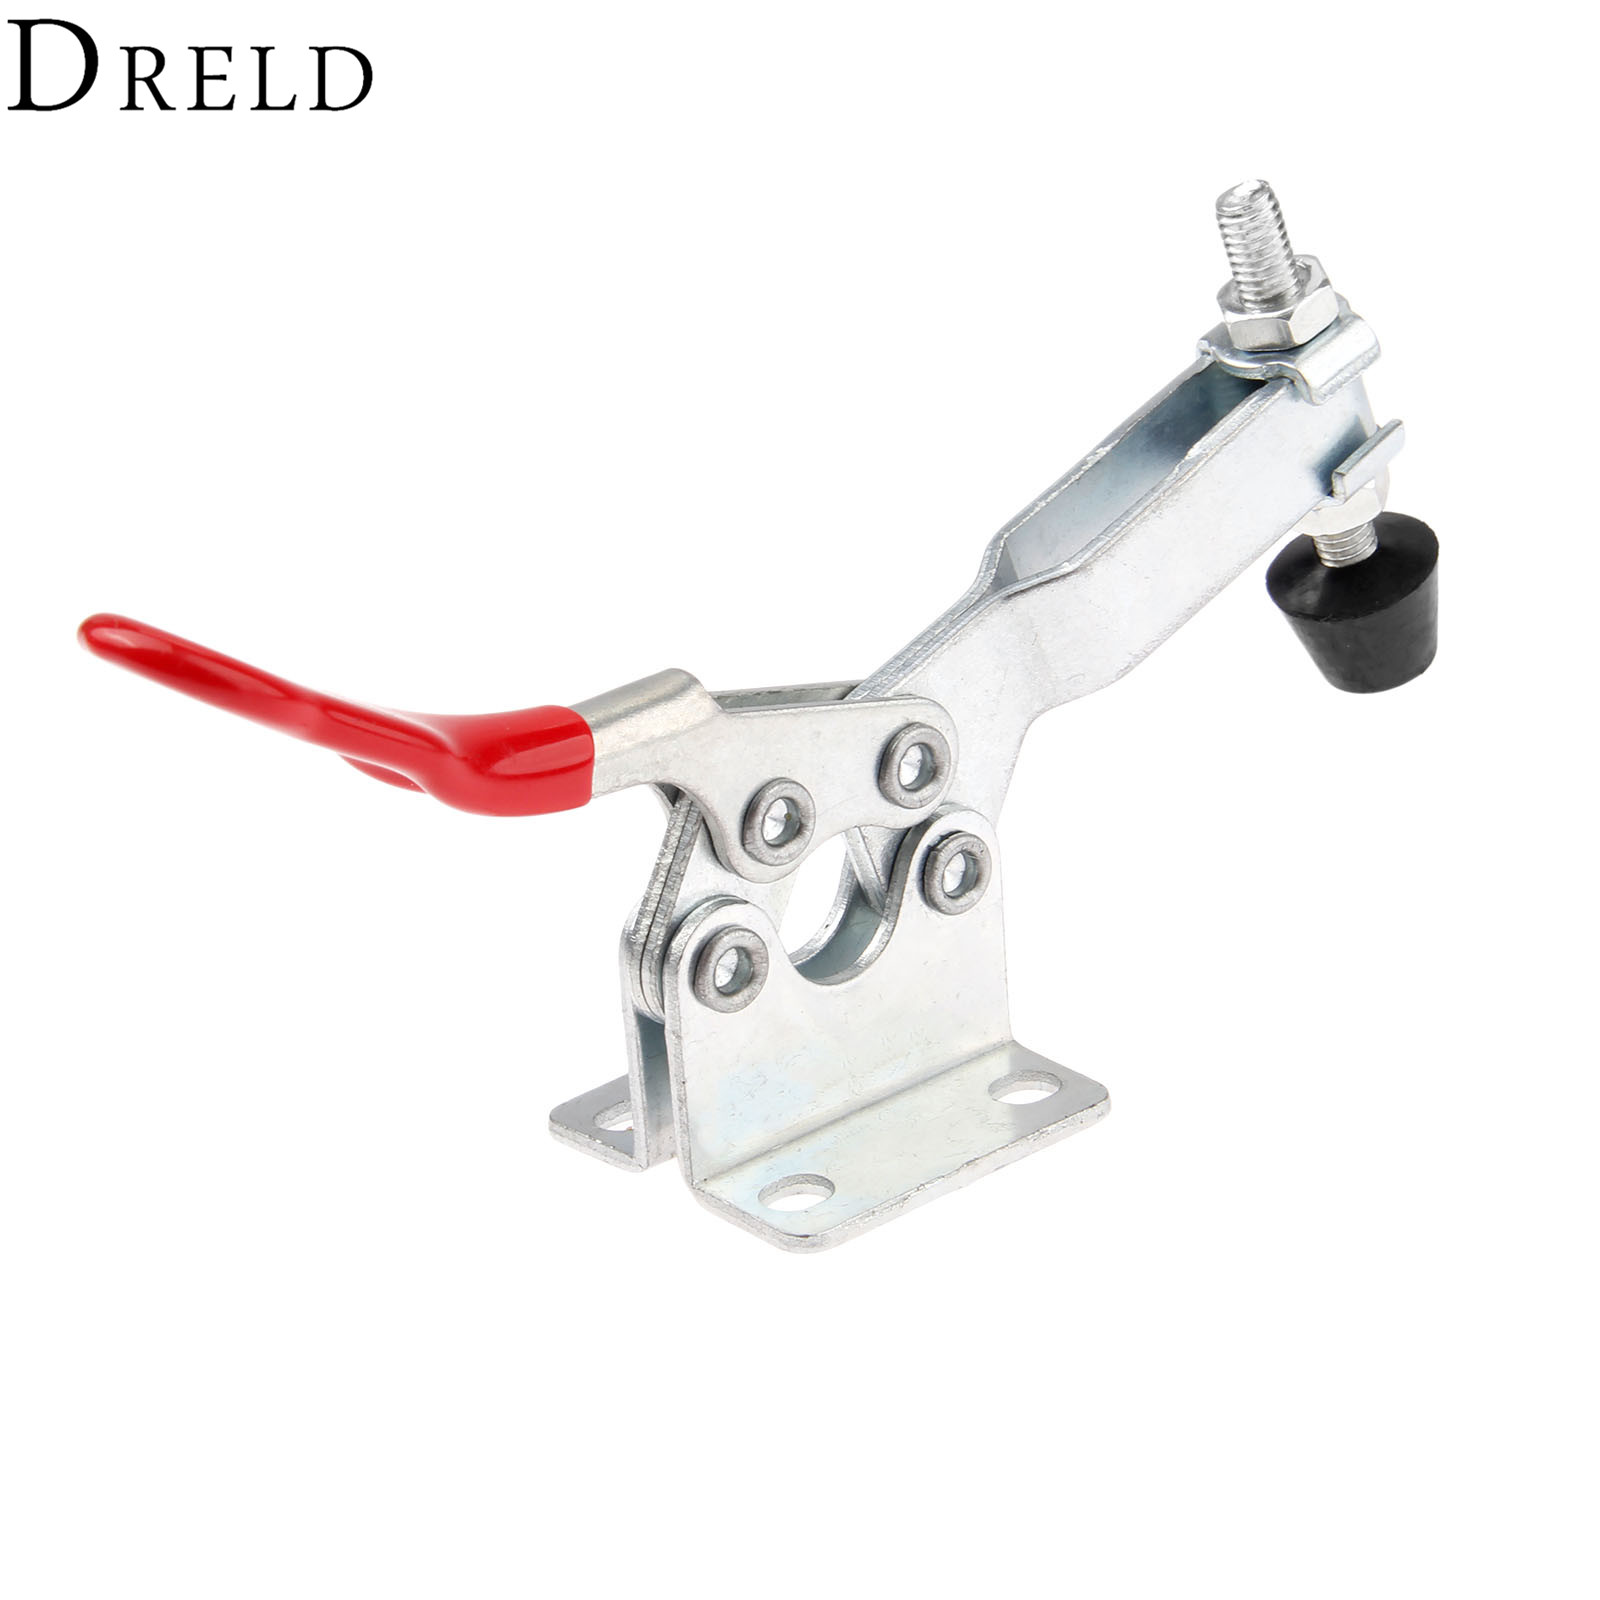 DRELD 1pc GH-201-B Horizontal Toggle Clamp Tool 90Kg 198 Lbs Holding Capacity Red Handle Quick Release Metal Fixture Hand Tools